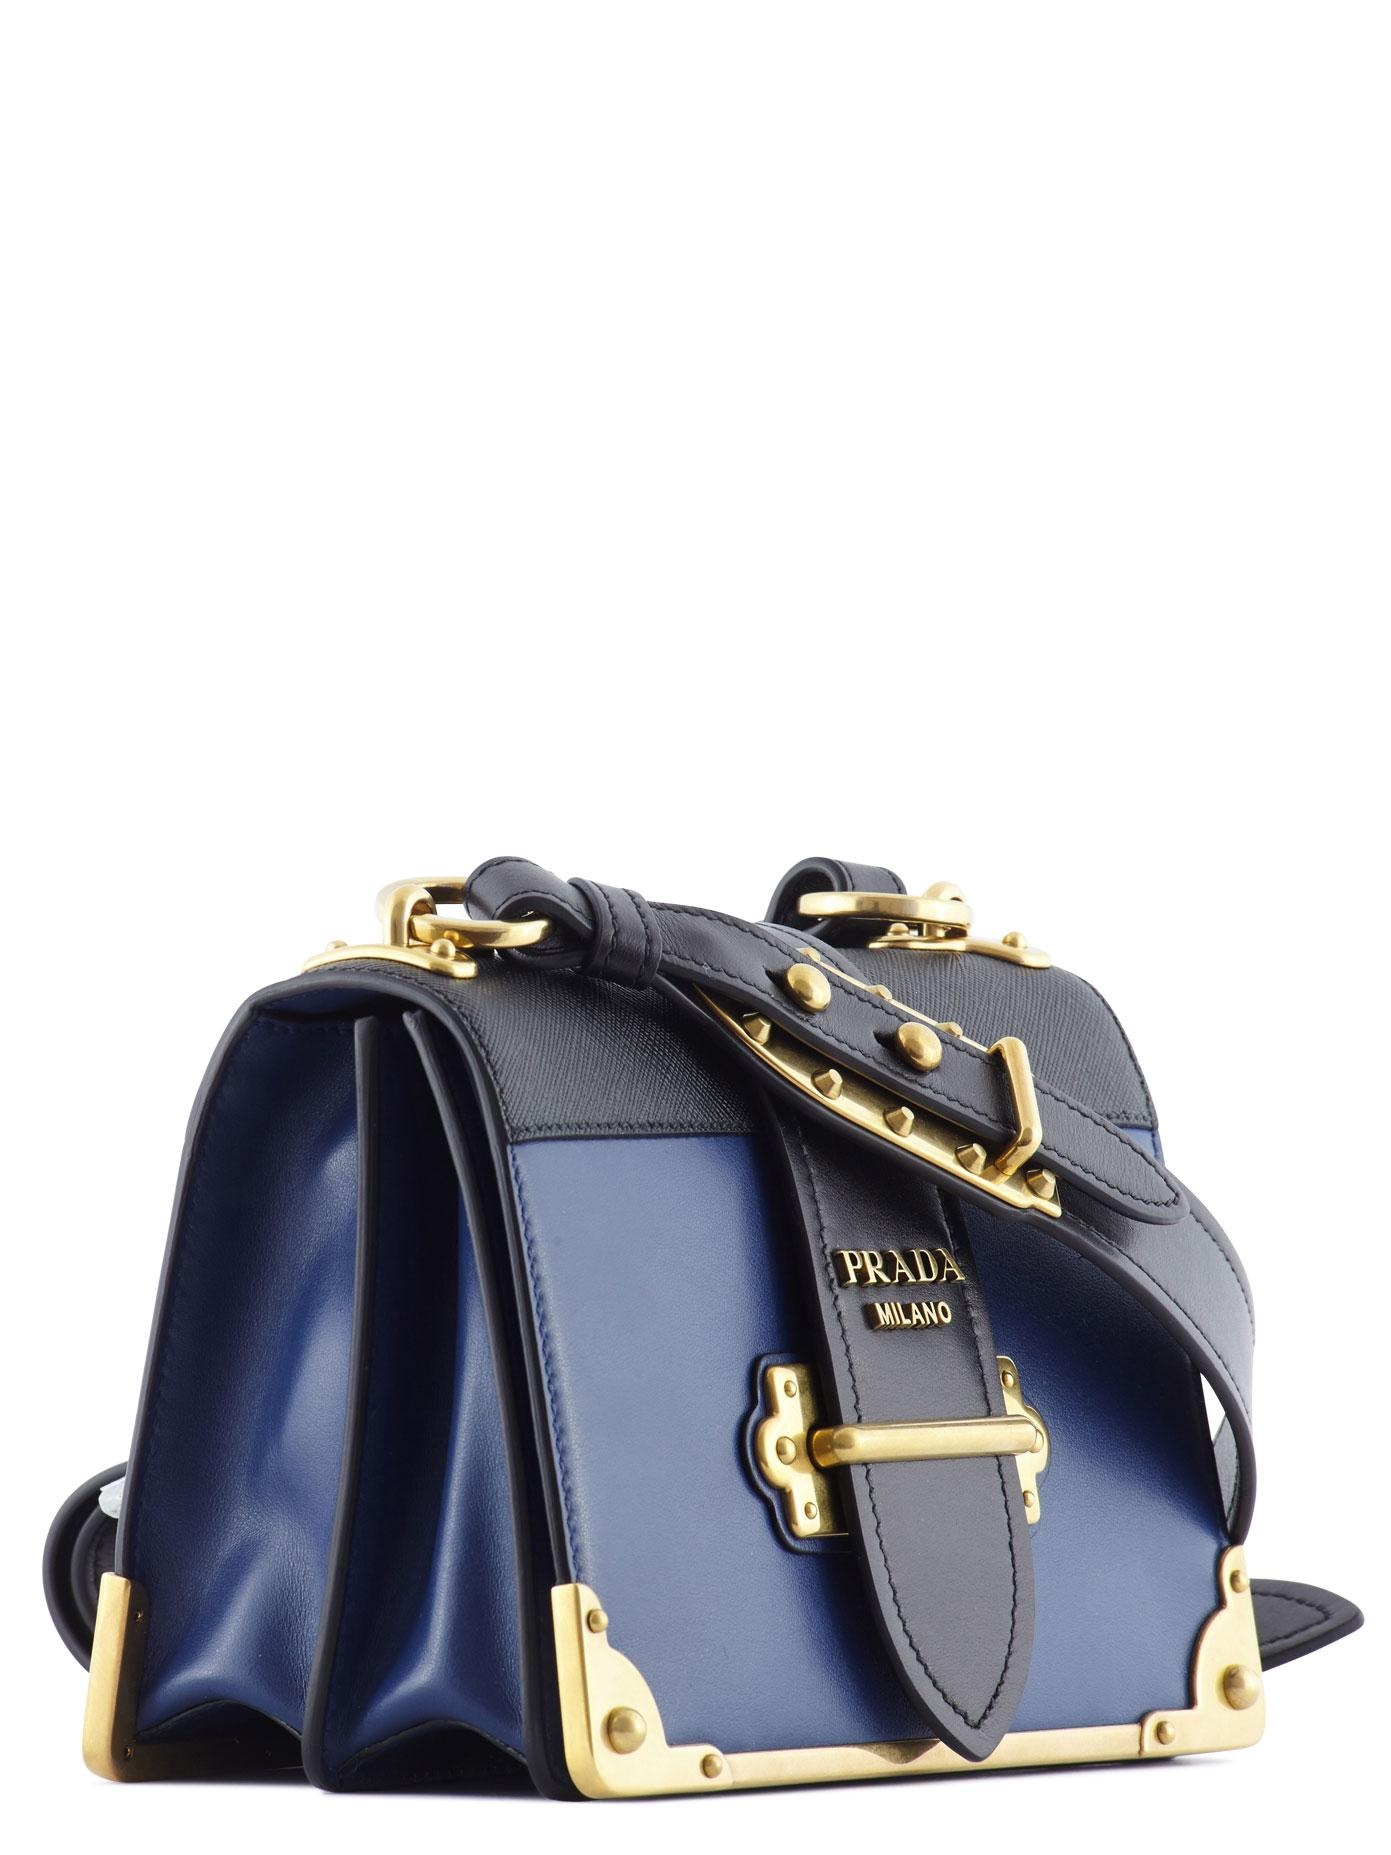 dc5f9770e072 Prada Cahier Bag Light Blue | Stanford Center for Opportunity Policy ...